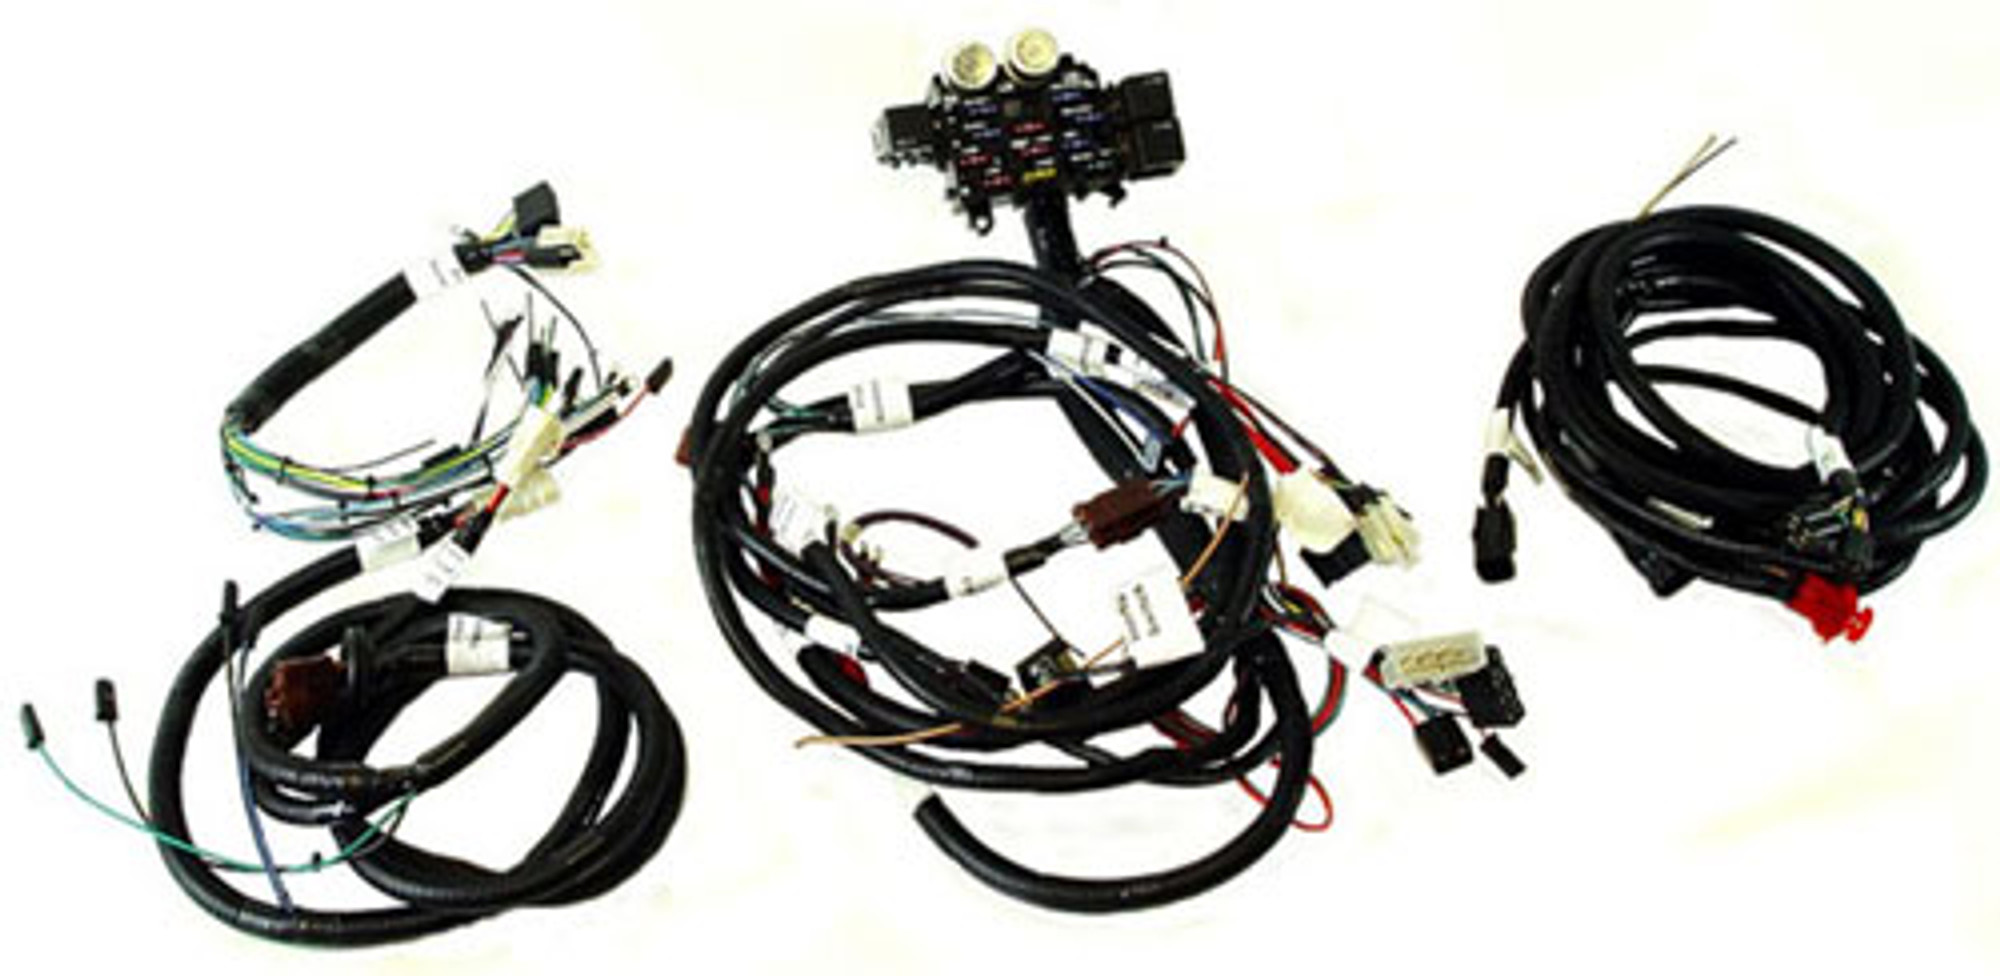 14503 chassis wiring harness factory five parts catalog rh factoryfiveparts com chassis wiring harness 86 ford mustang chassis wiring harness for 2004 kodiak